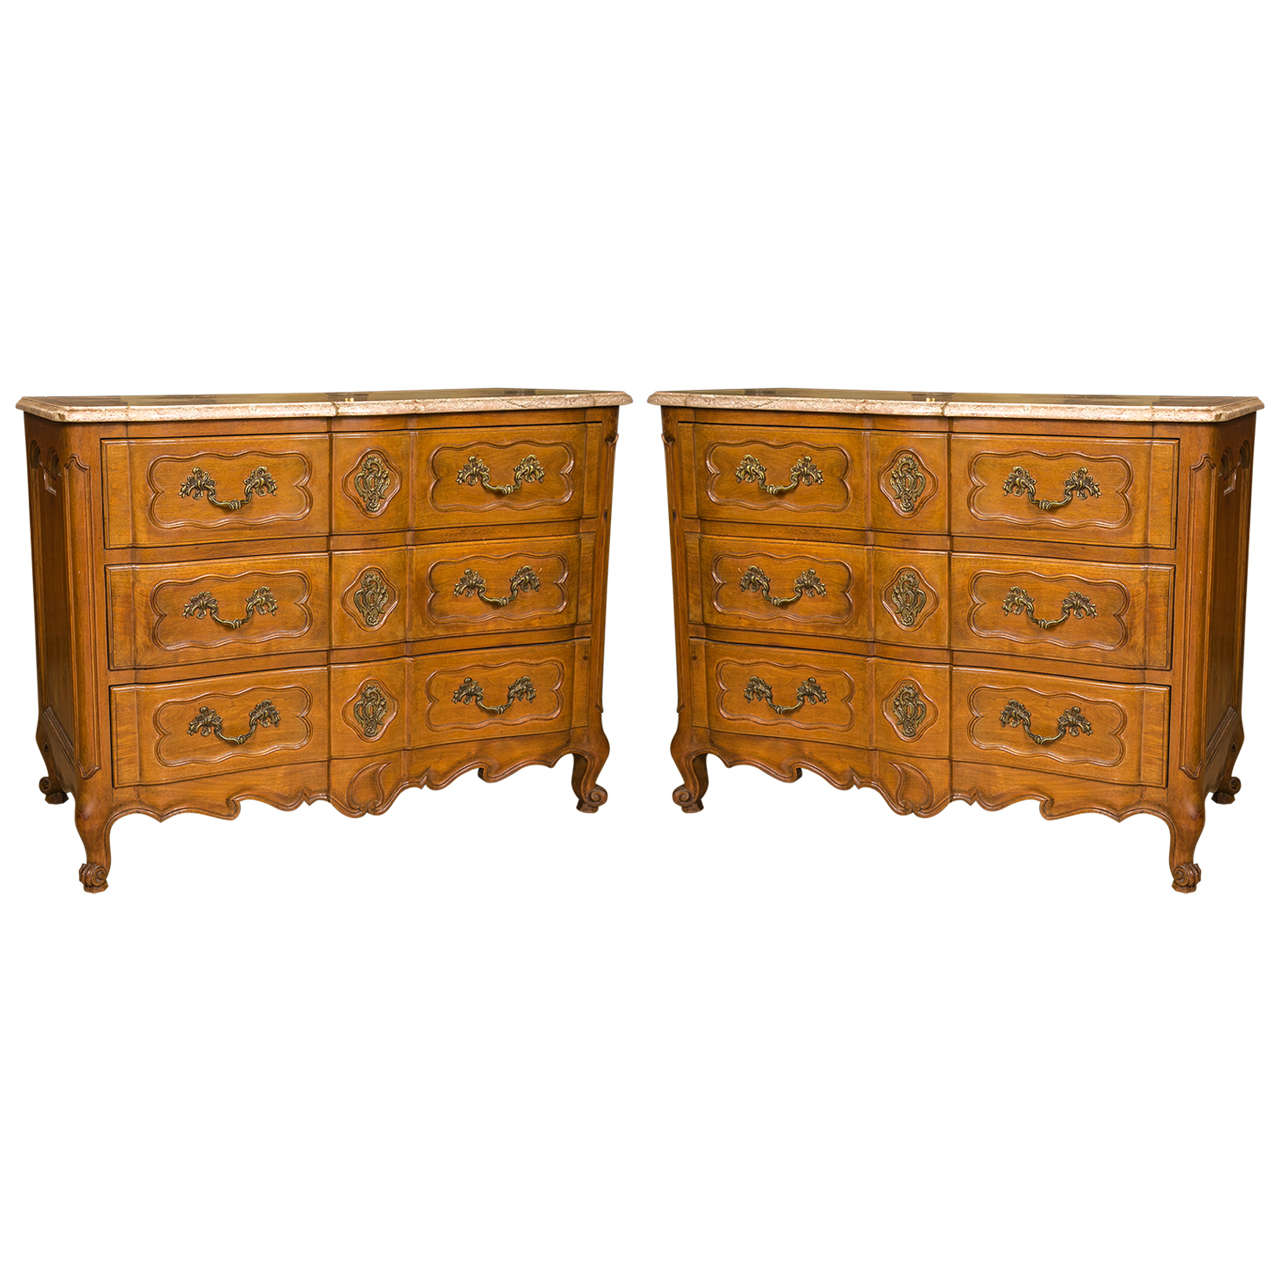 pair of marble top louis xv style commodes attributed to maison jansen for sale at 1stdibs. Black Bedroom Furniture Sets. Home Design Ideas